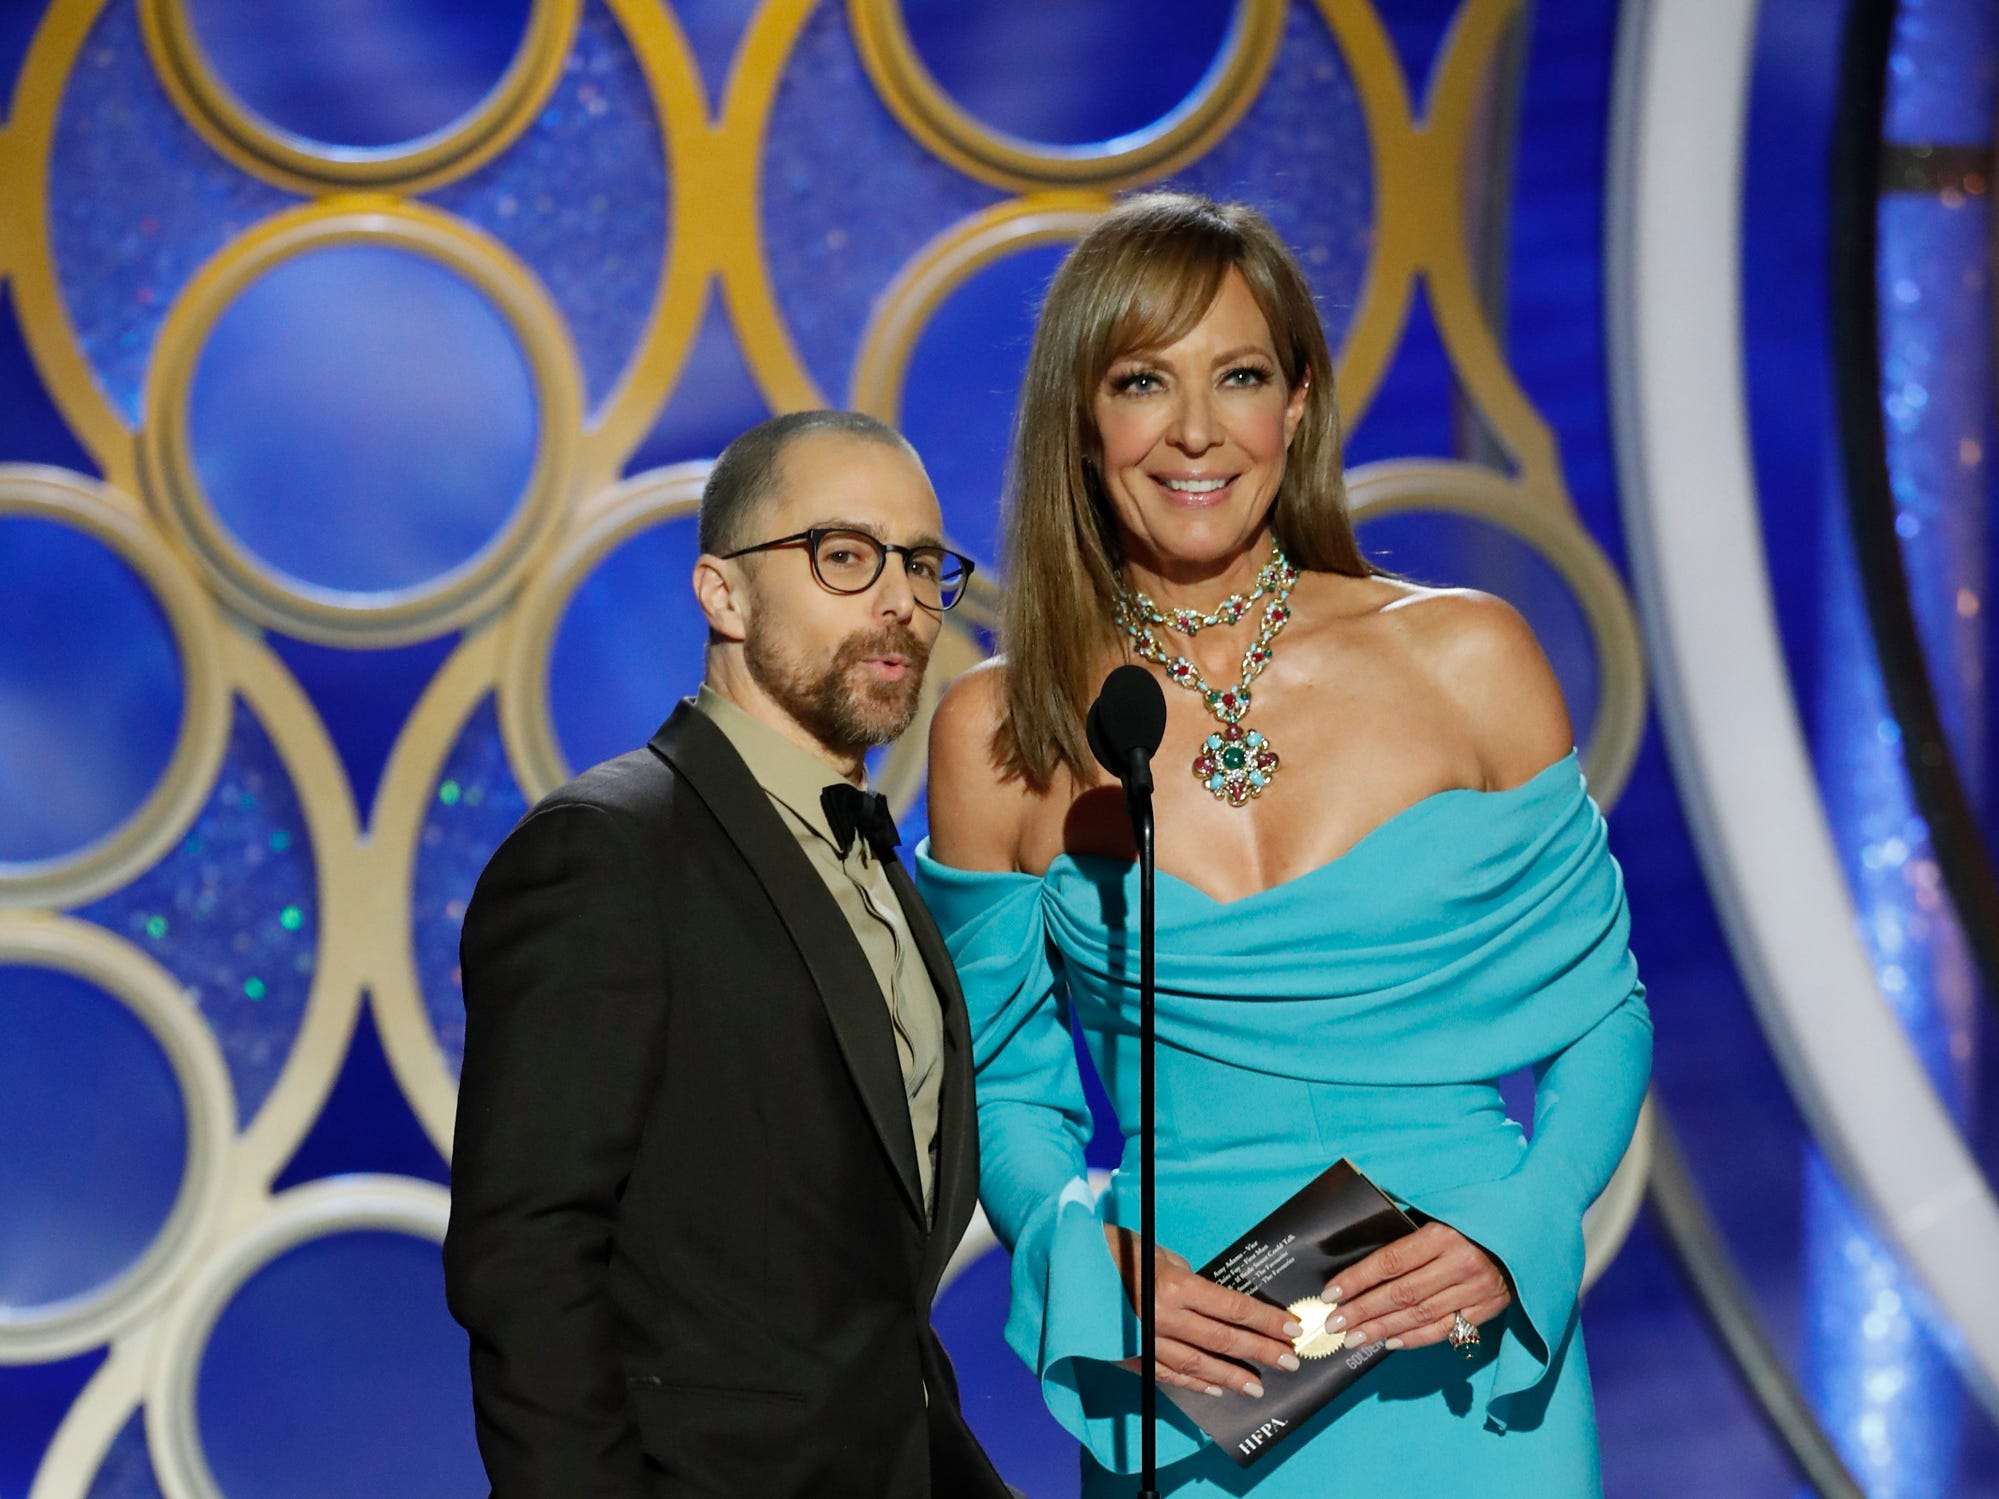 This image released by NBC shows presenters Sam Rockwell, left, and Allison Janney during the 76th Annual Golden Globe Awards at the Beverly Hilton Hotel.